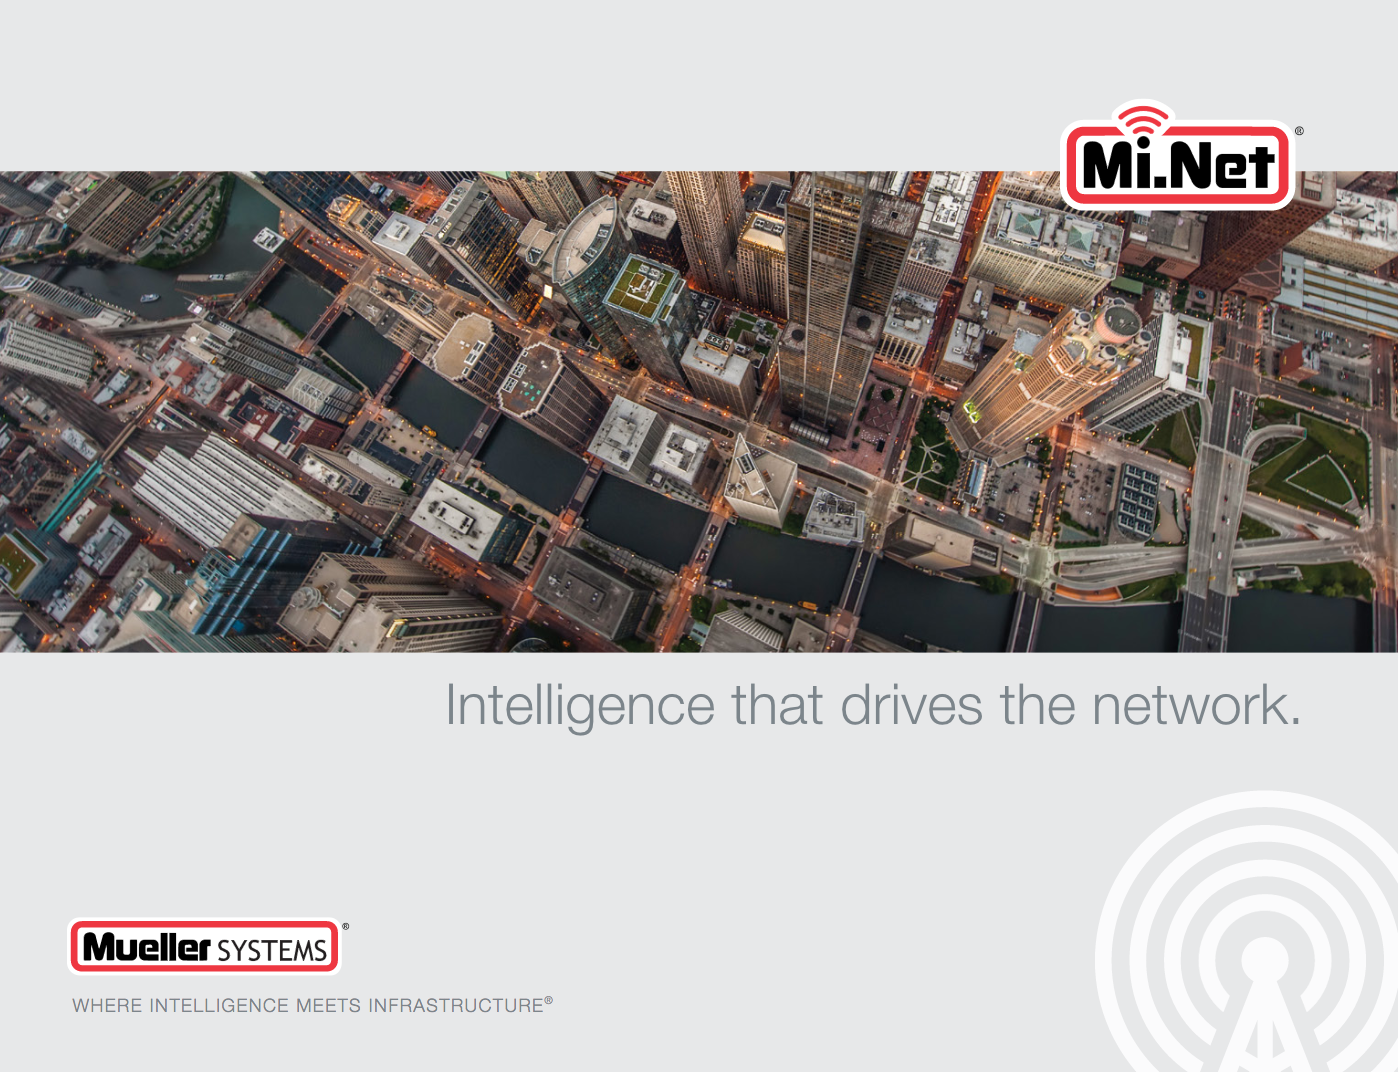 A promotional poster for Mueller Mi.net smart meter mesh network system- the same system in place in James Bates' Bentonville neighborhood